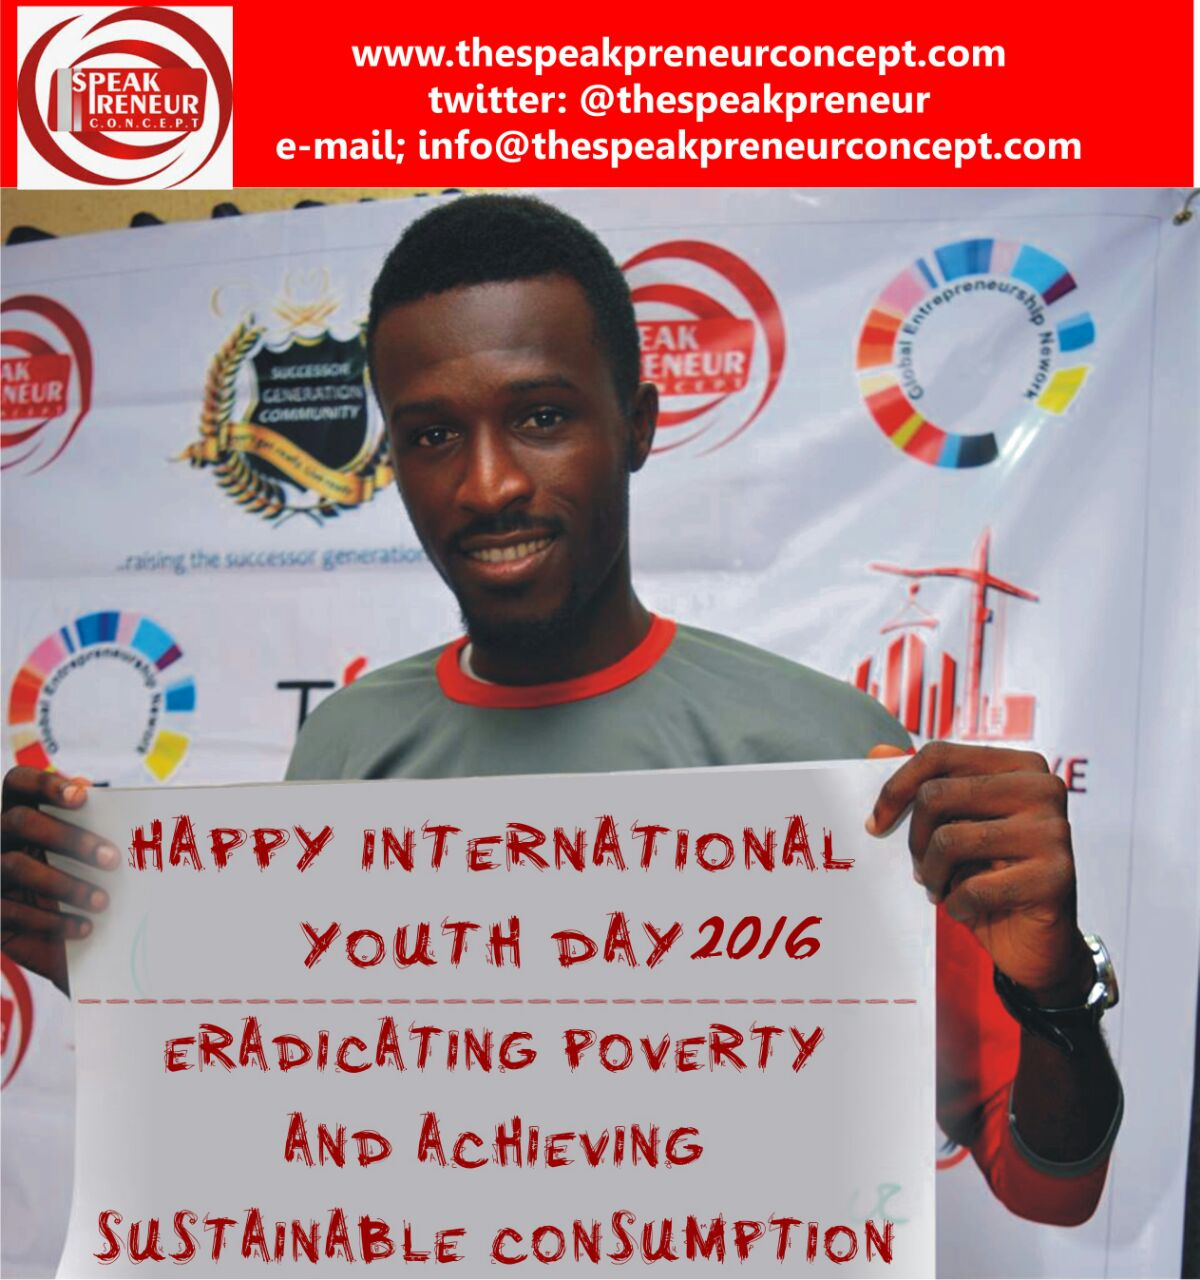 """International Youth Day 2016 - """"The Road to 2030: Eradicating Poverty and Achieving Sustainable Consumption and Production"""""""